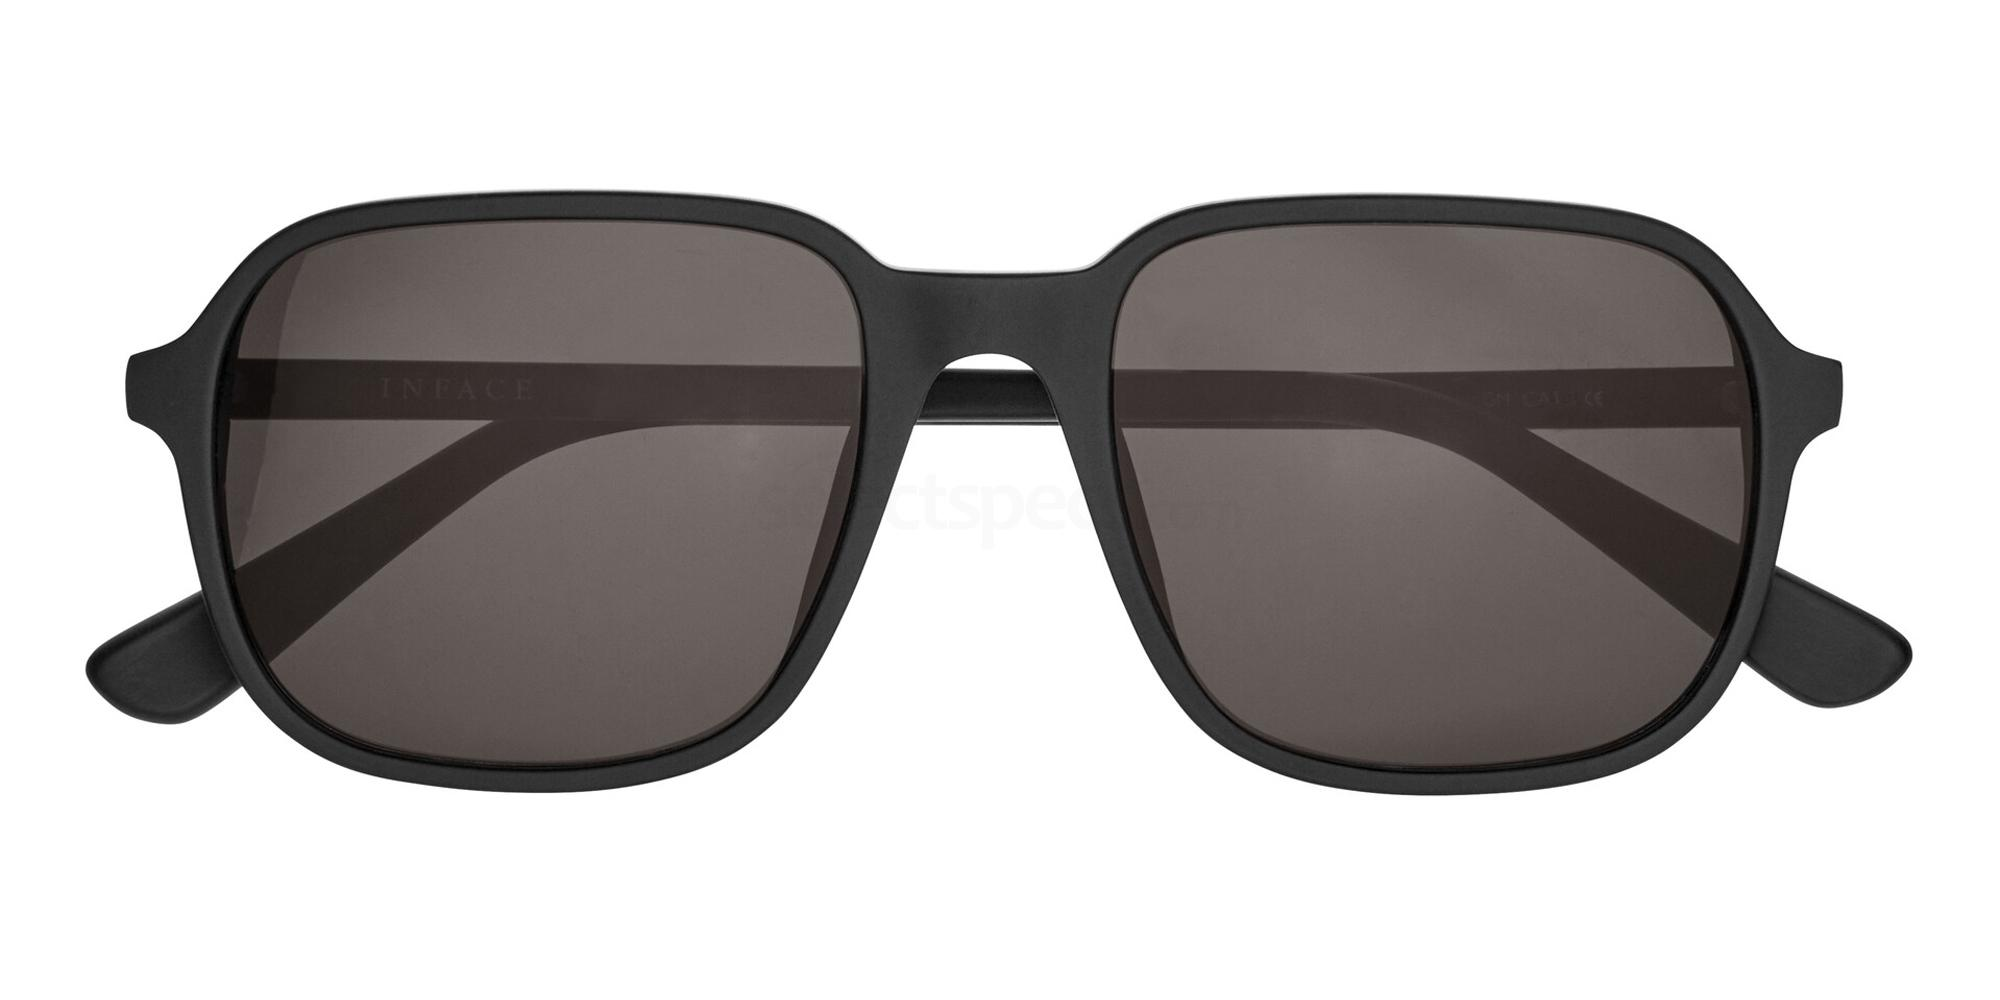 6031 IF9820 Sunglasses, Inface in Love